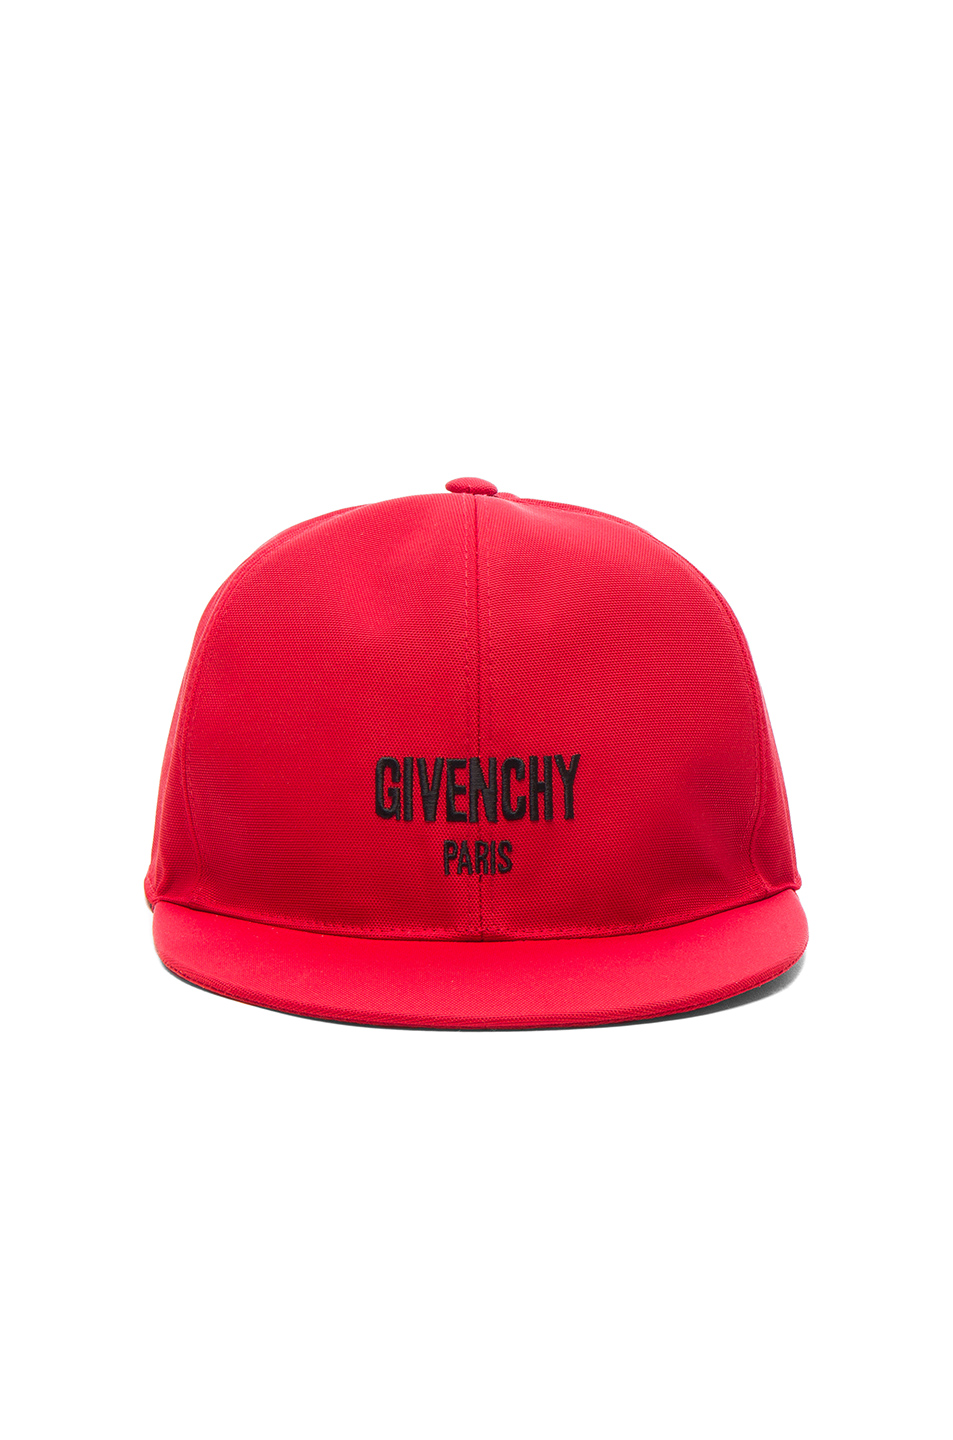 Givenchy Cap in Red